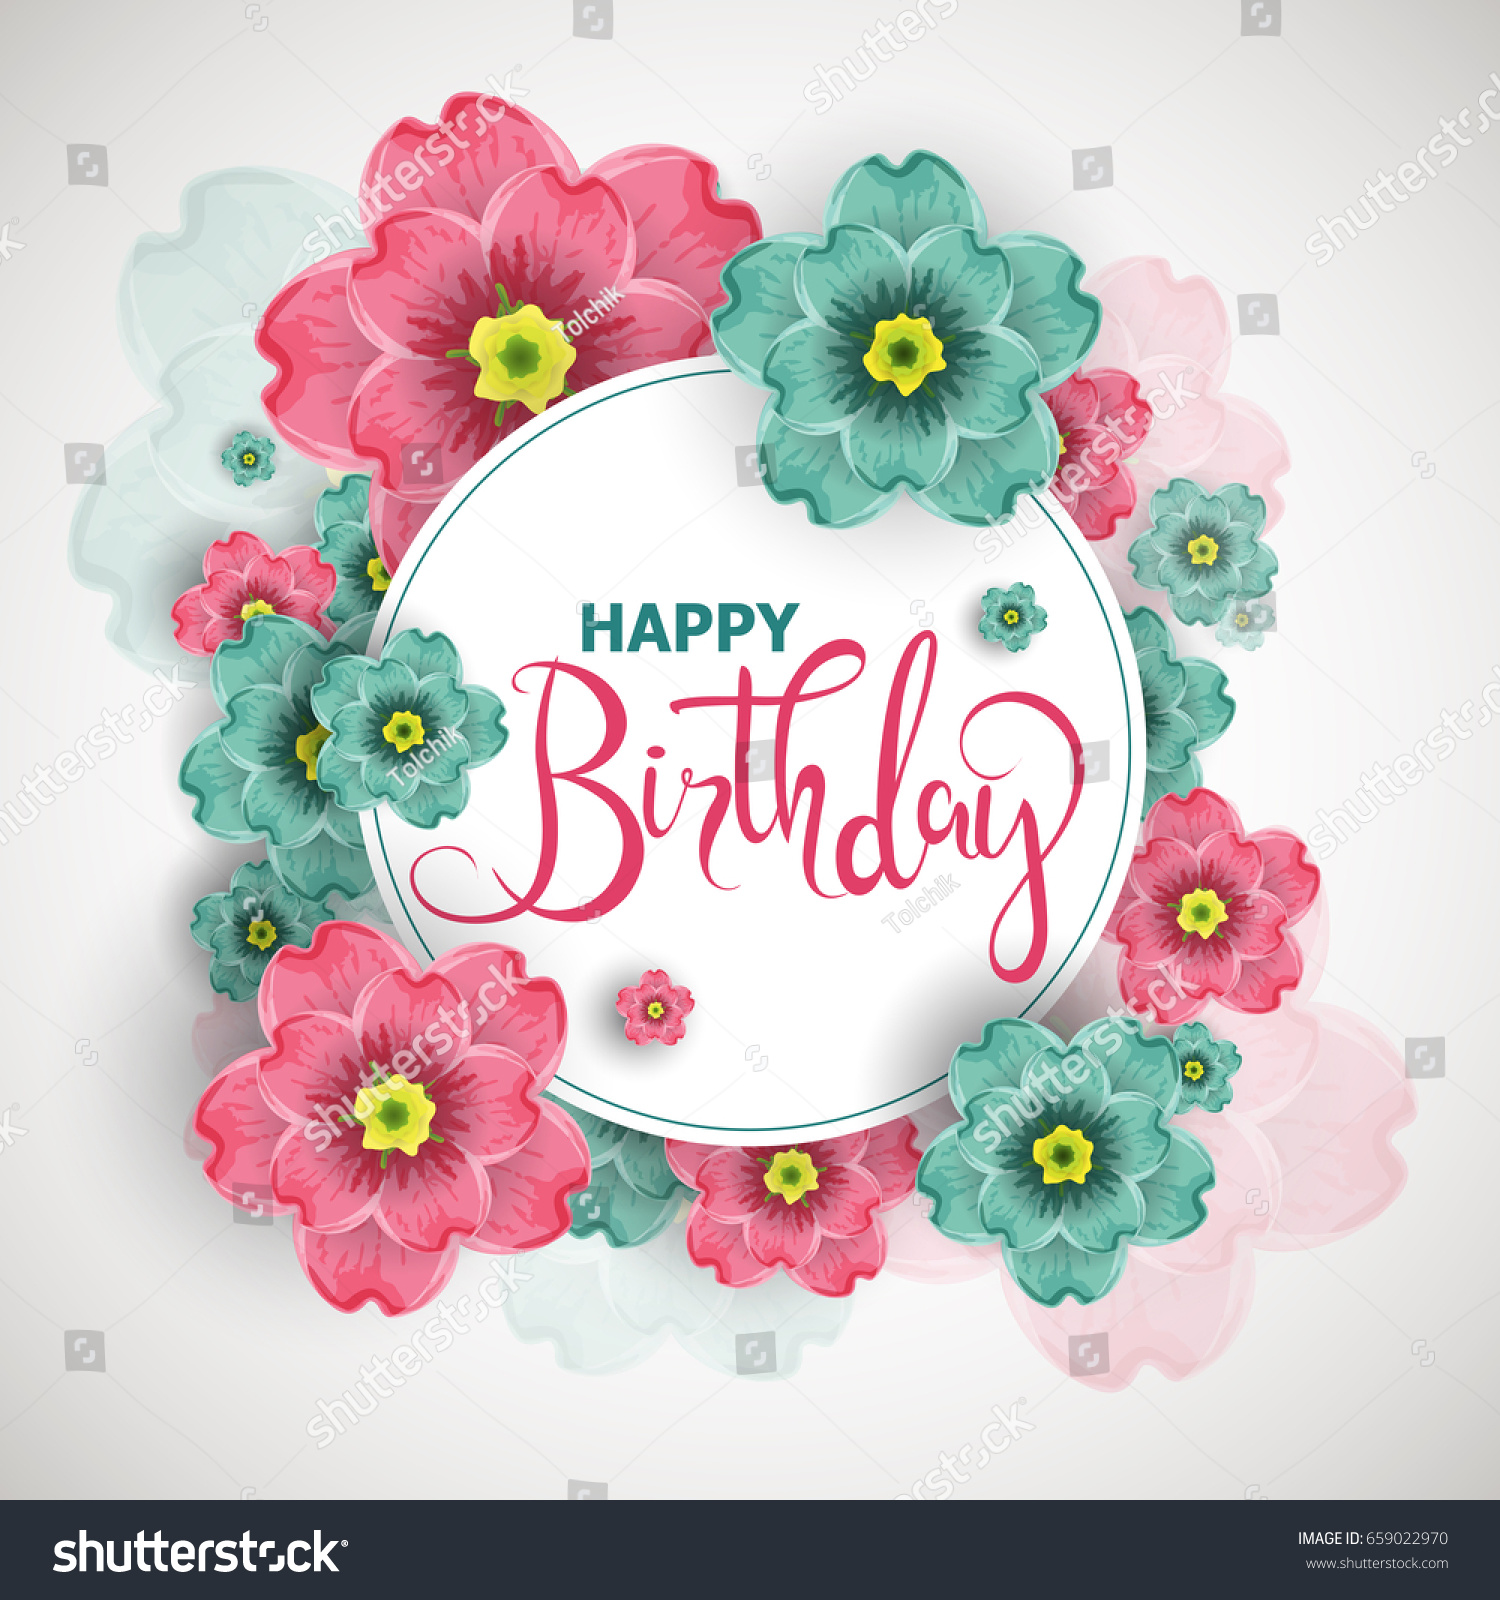 Birthday greeting card poster invitation design stock vector birthday greeting card poster invitation design with blossoms flowers vector illustration stopboris Image collections